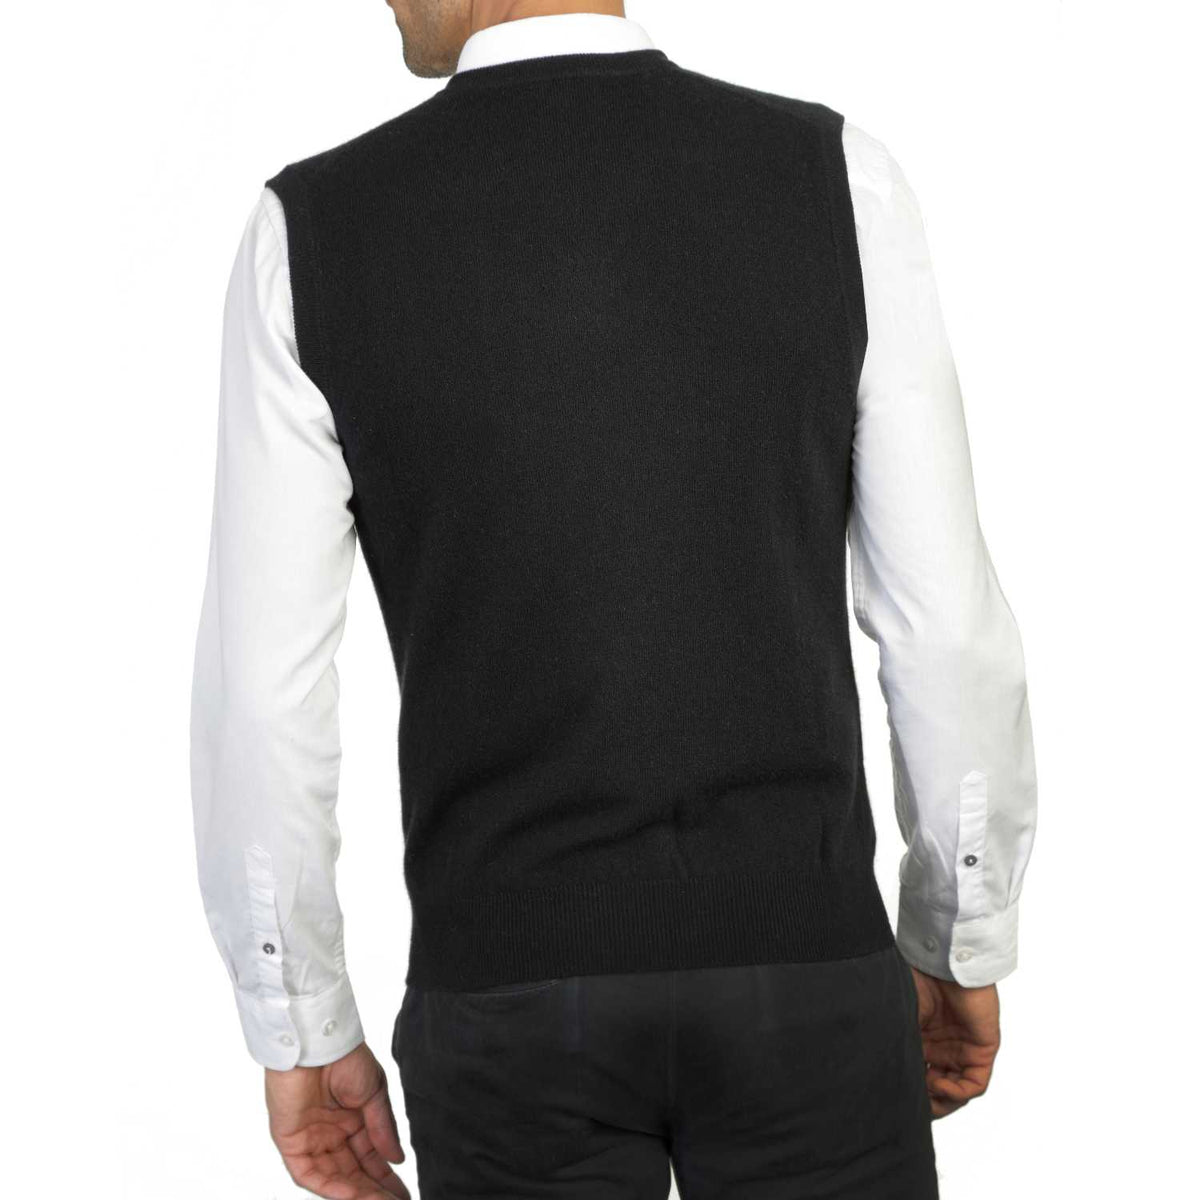 Mens Black Cashmere Sleeveless Vest Sweater | Back | Shop at The Cashmere Choice | London